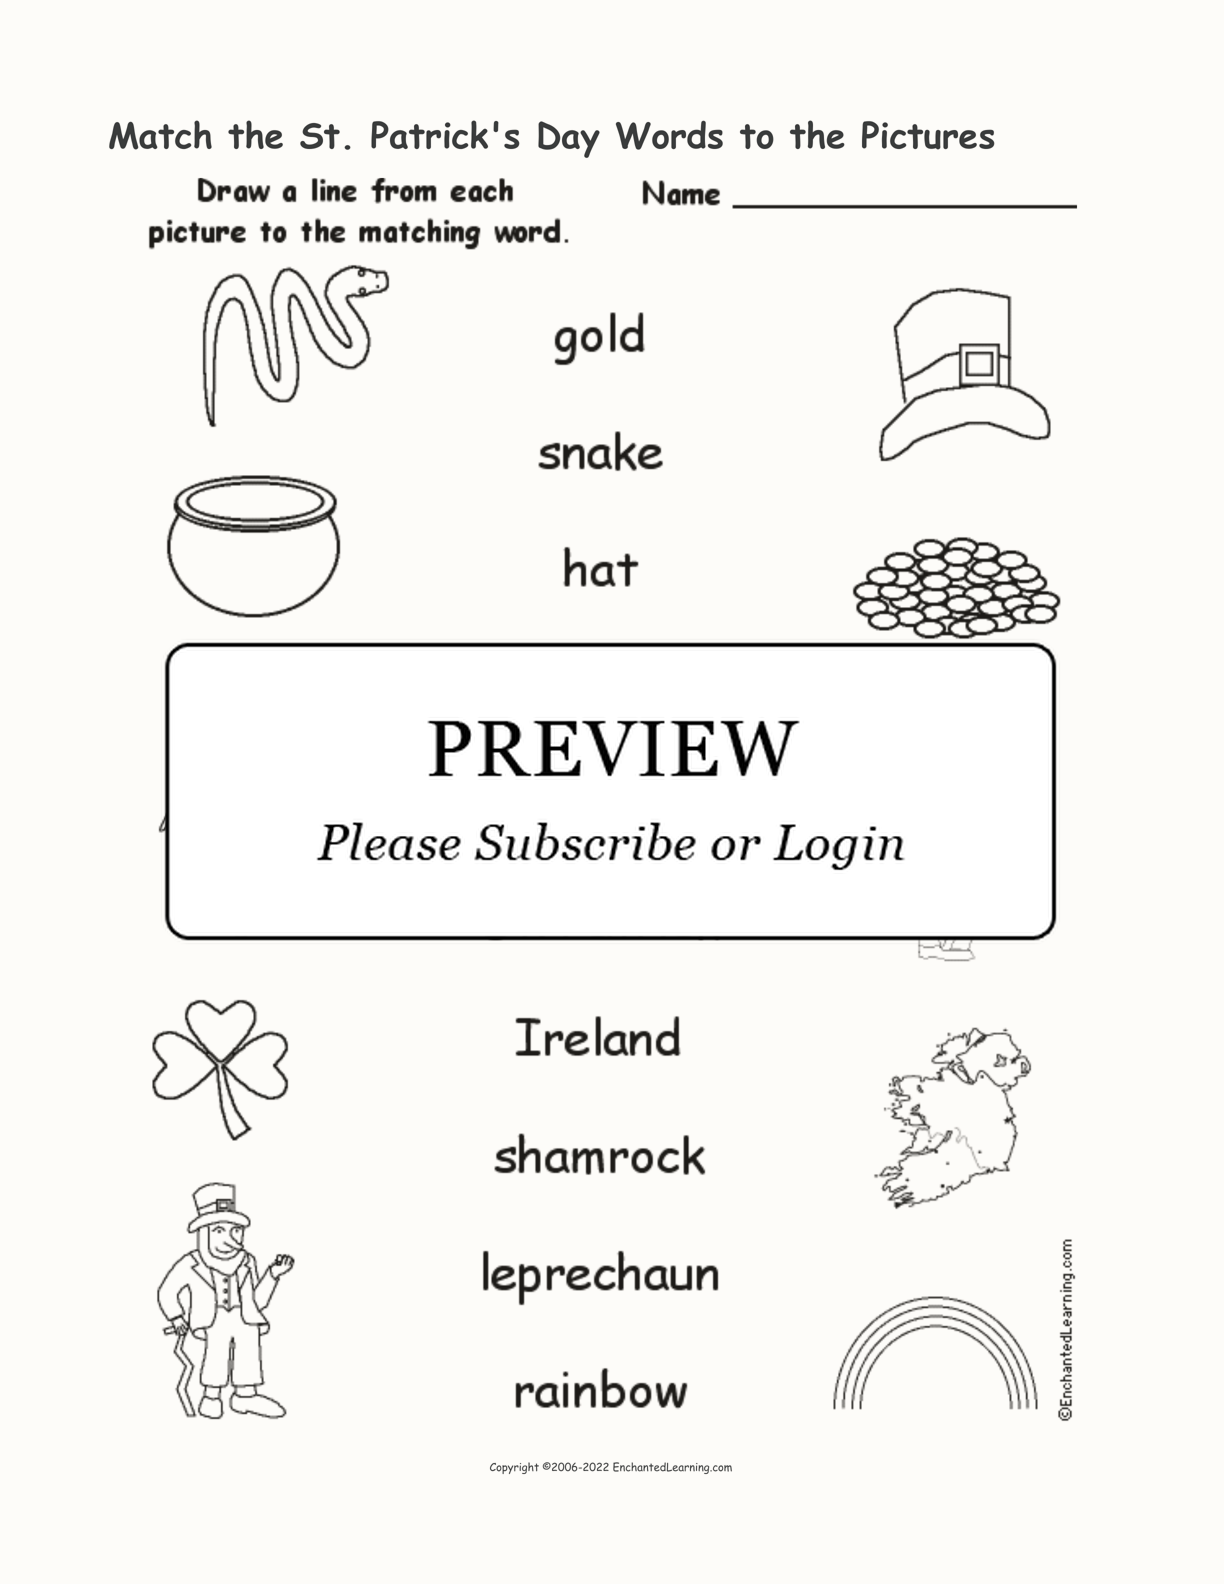 St. Patrick's Day - Match the Words to the Pictures interactive worksheet page 1